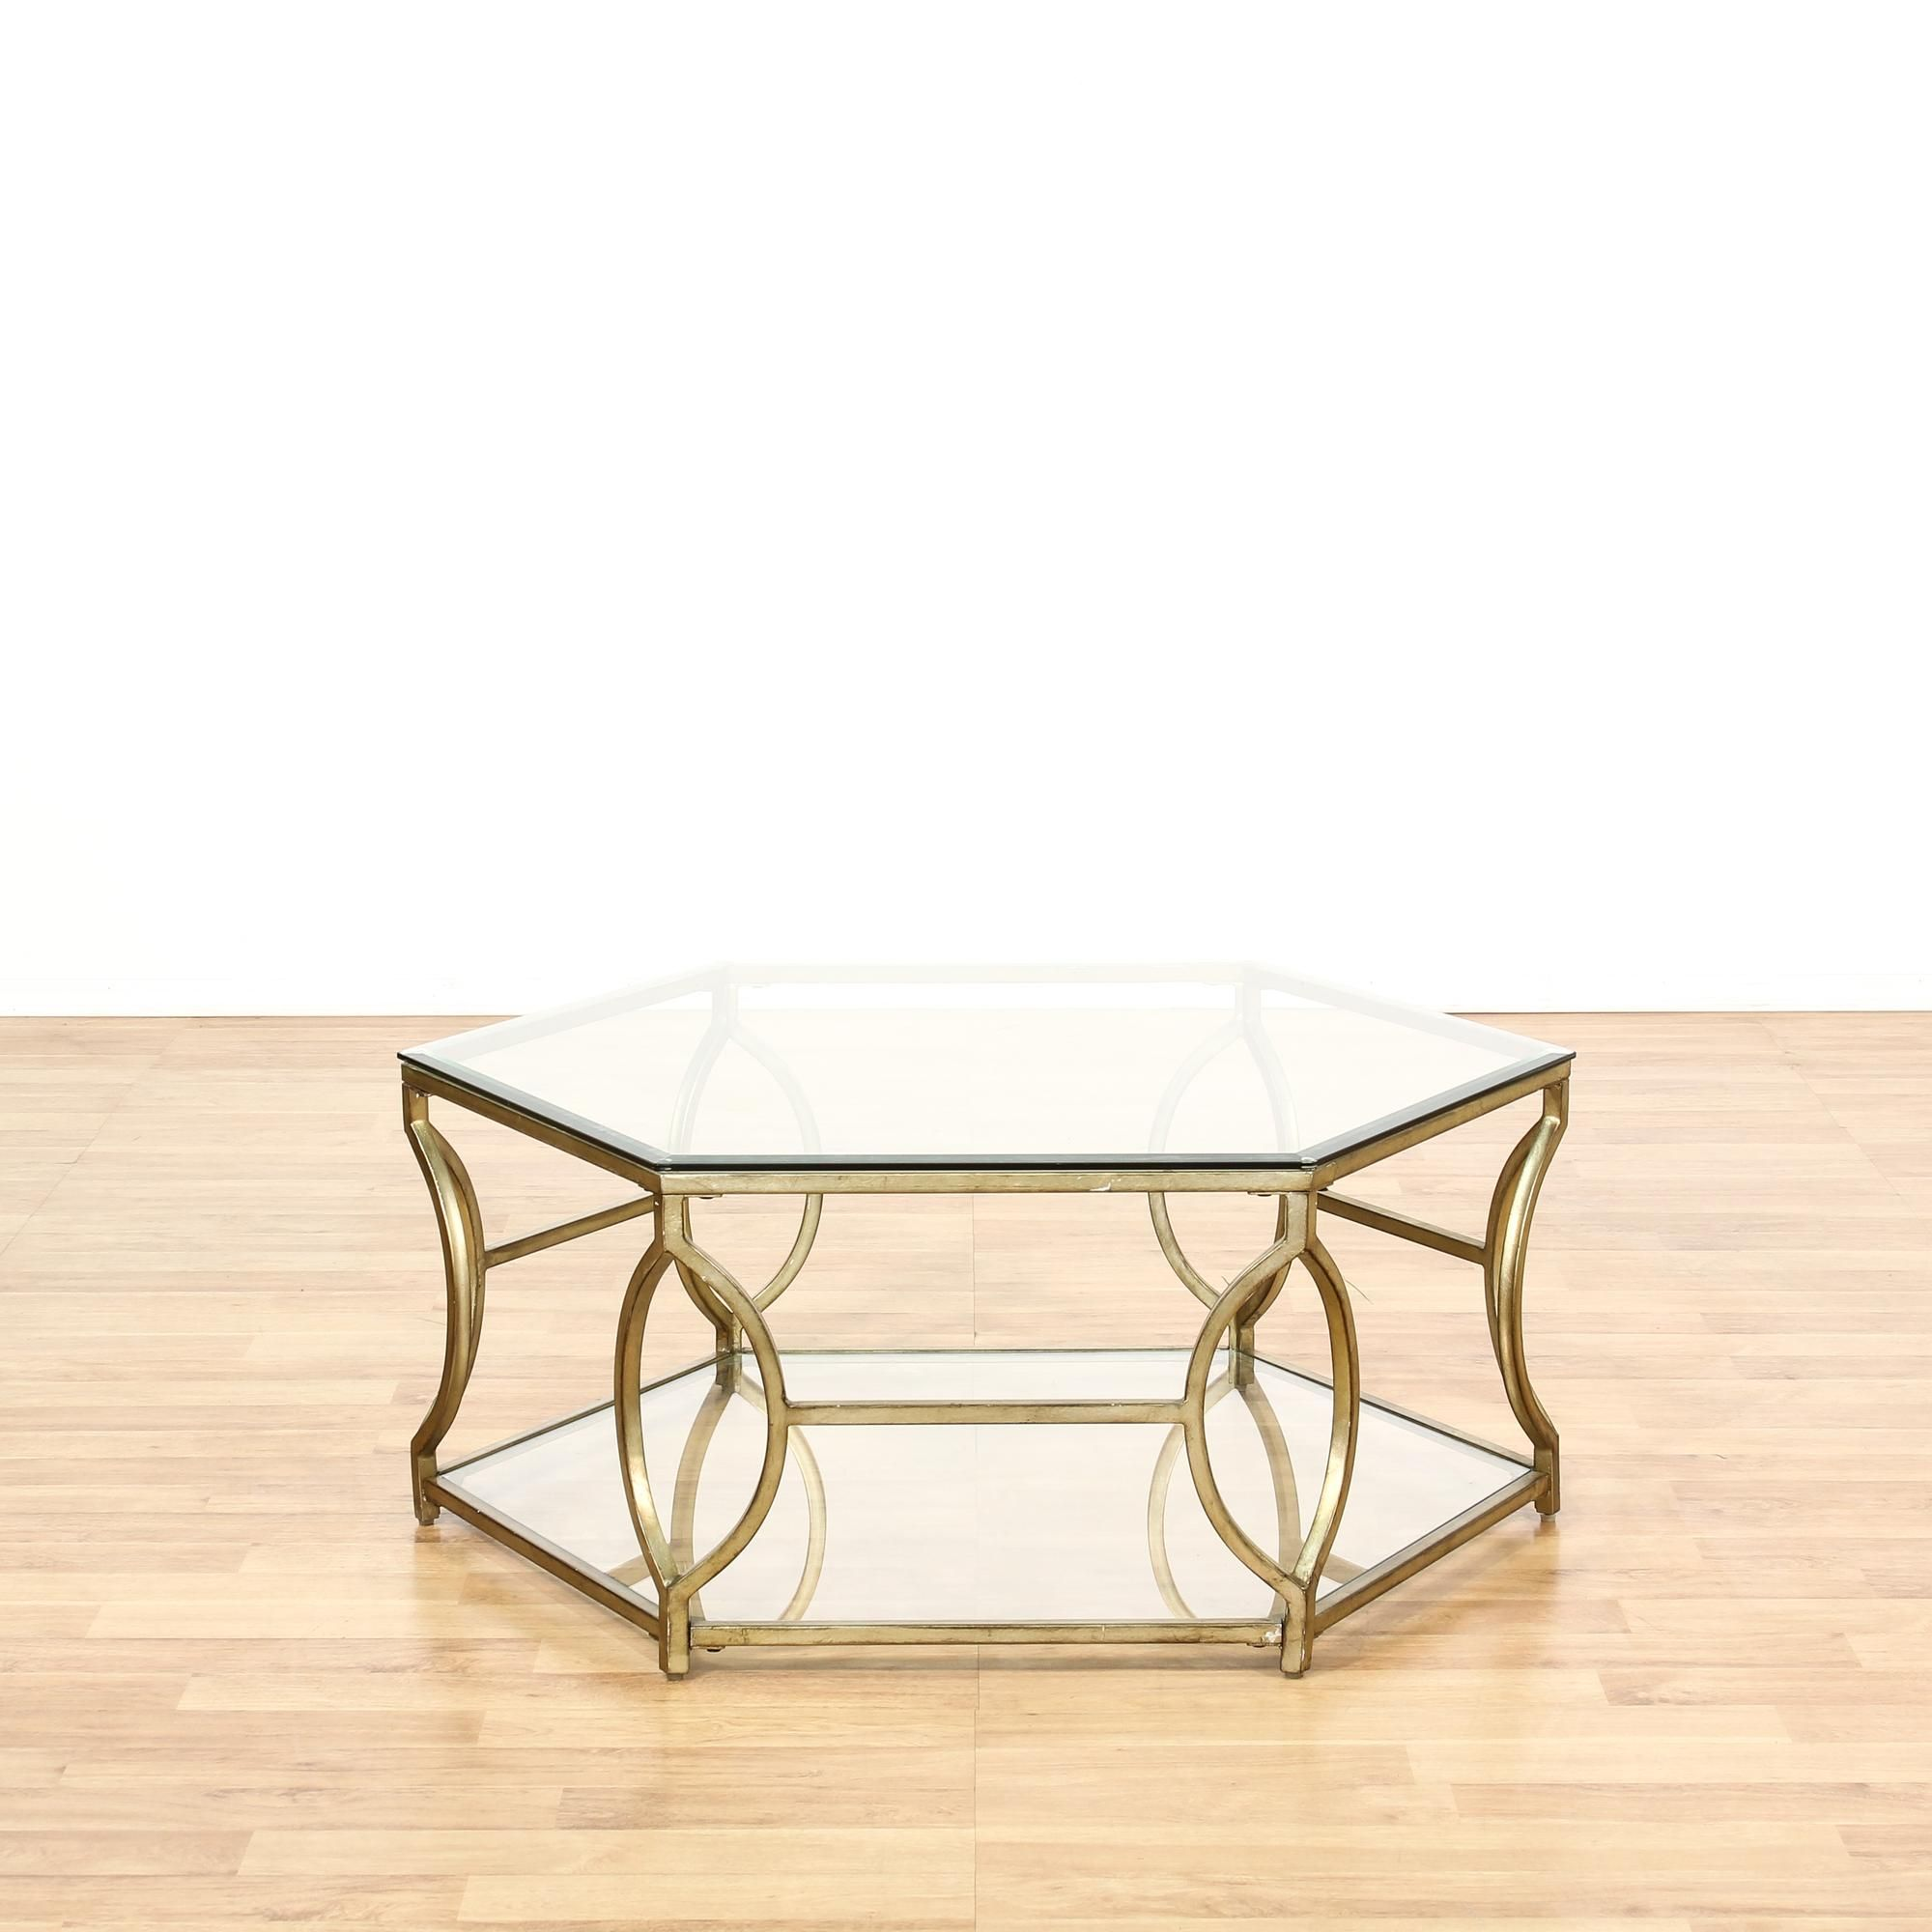 This octagon coffee table is featured in a shiny polished brass